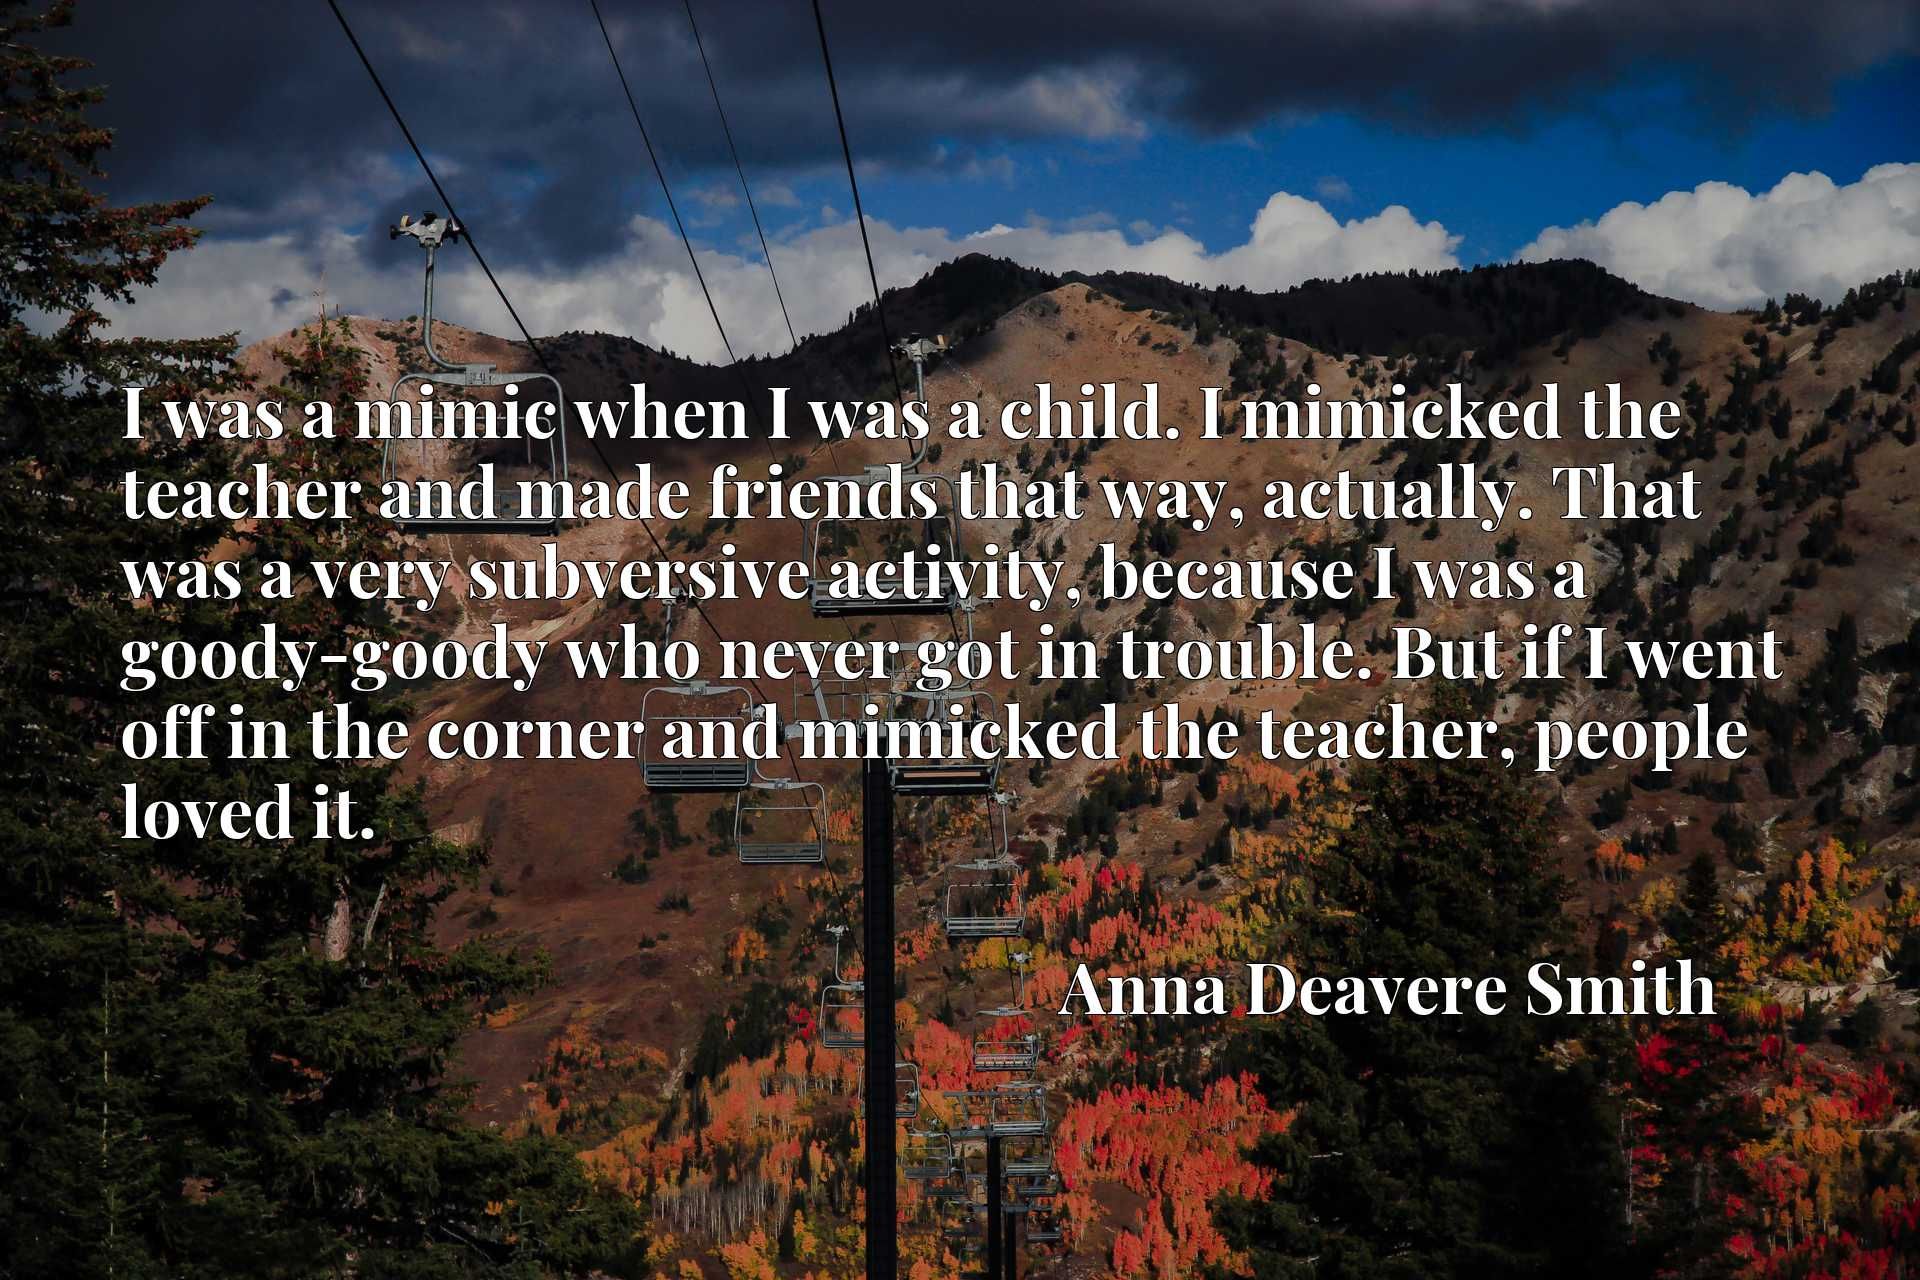 Quote Picture :I was a mimic when I was a child. I mimicked the teacher and made friends that way, actually. That was a very subversive activity, because I was a goody-goody who never got in trouble. But if I went off in the corner and mimicked the teacher, people loved it.